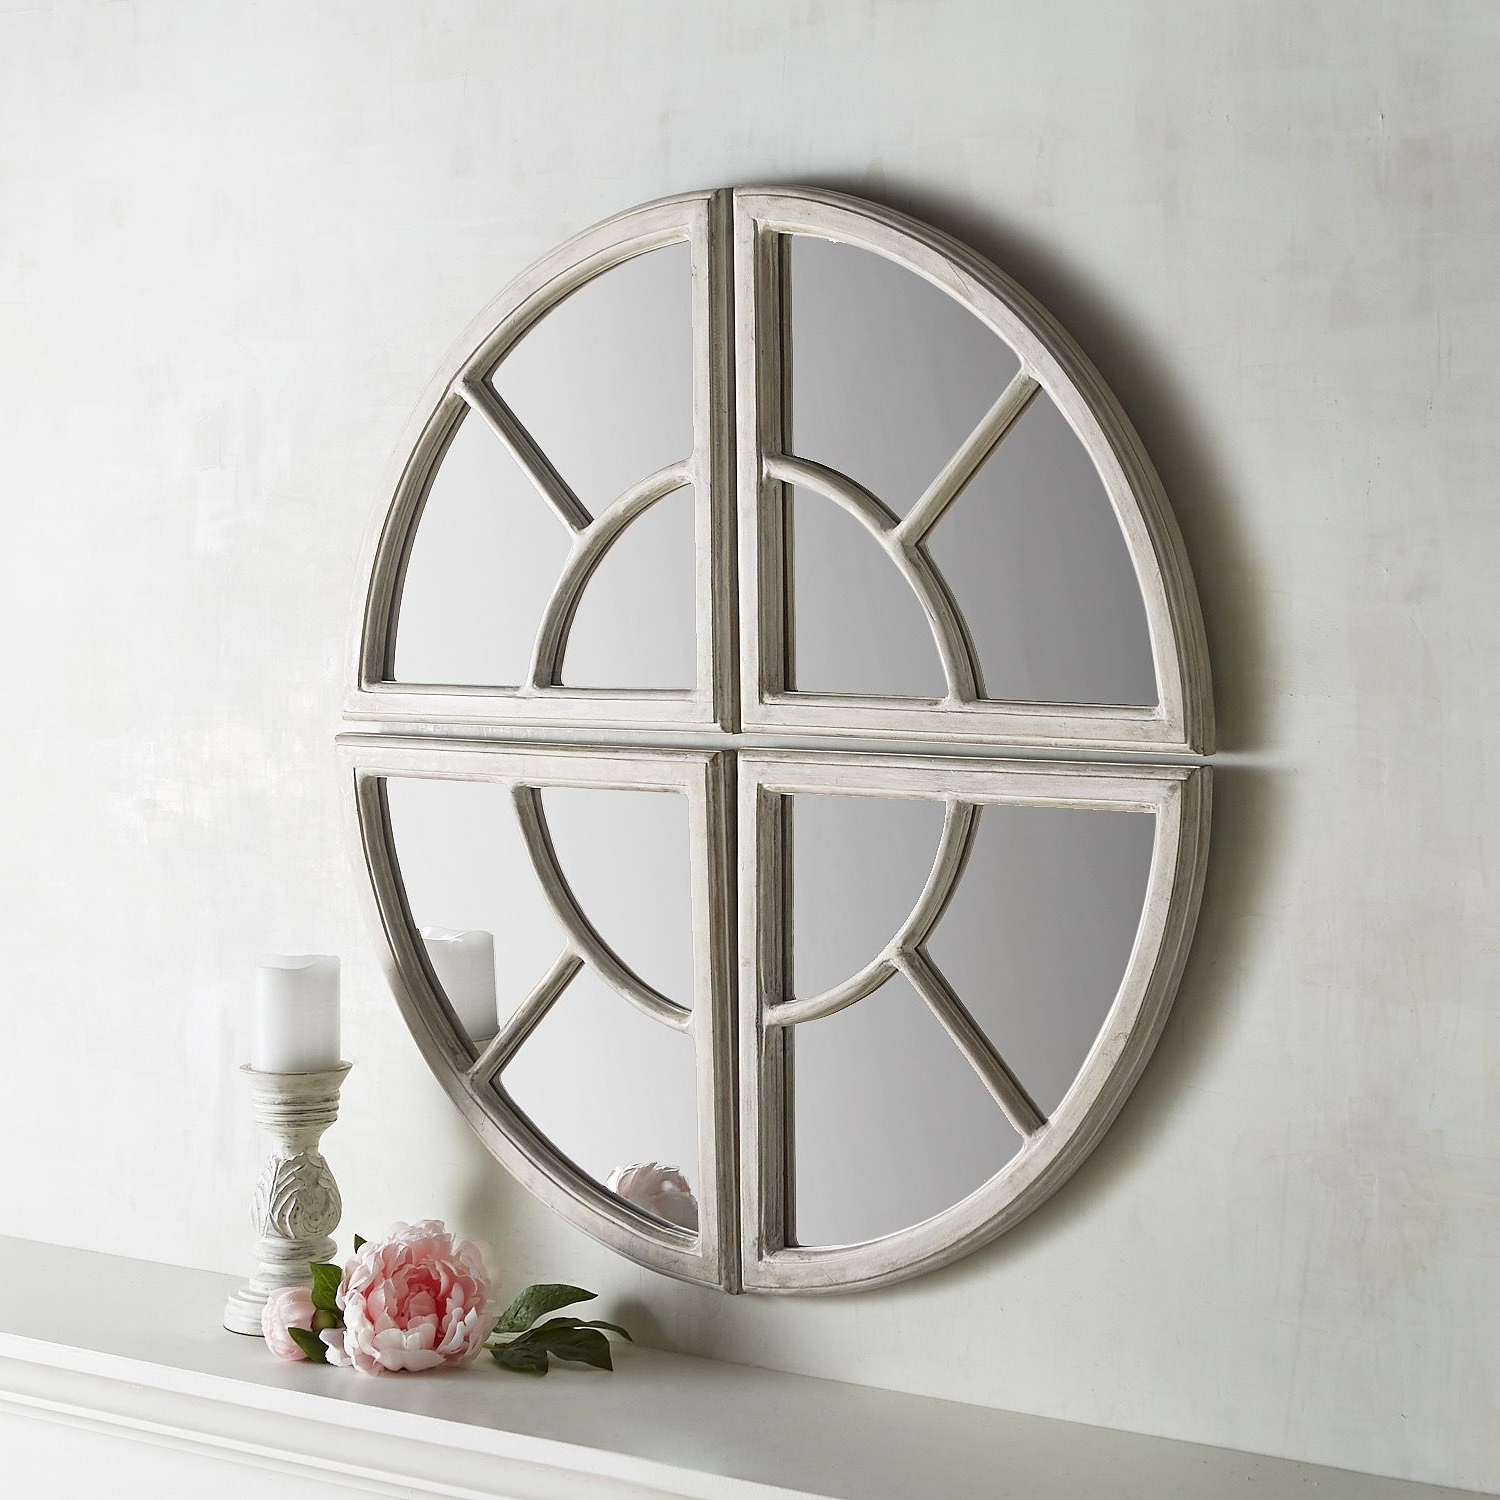 Polito Cottage/country Wall Mirrors With Regard To Well Liked Maddie 4 Piece Wooden Round Mirror Set White (View 13 of 20)